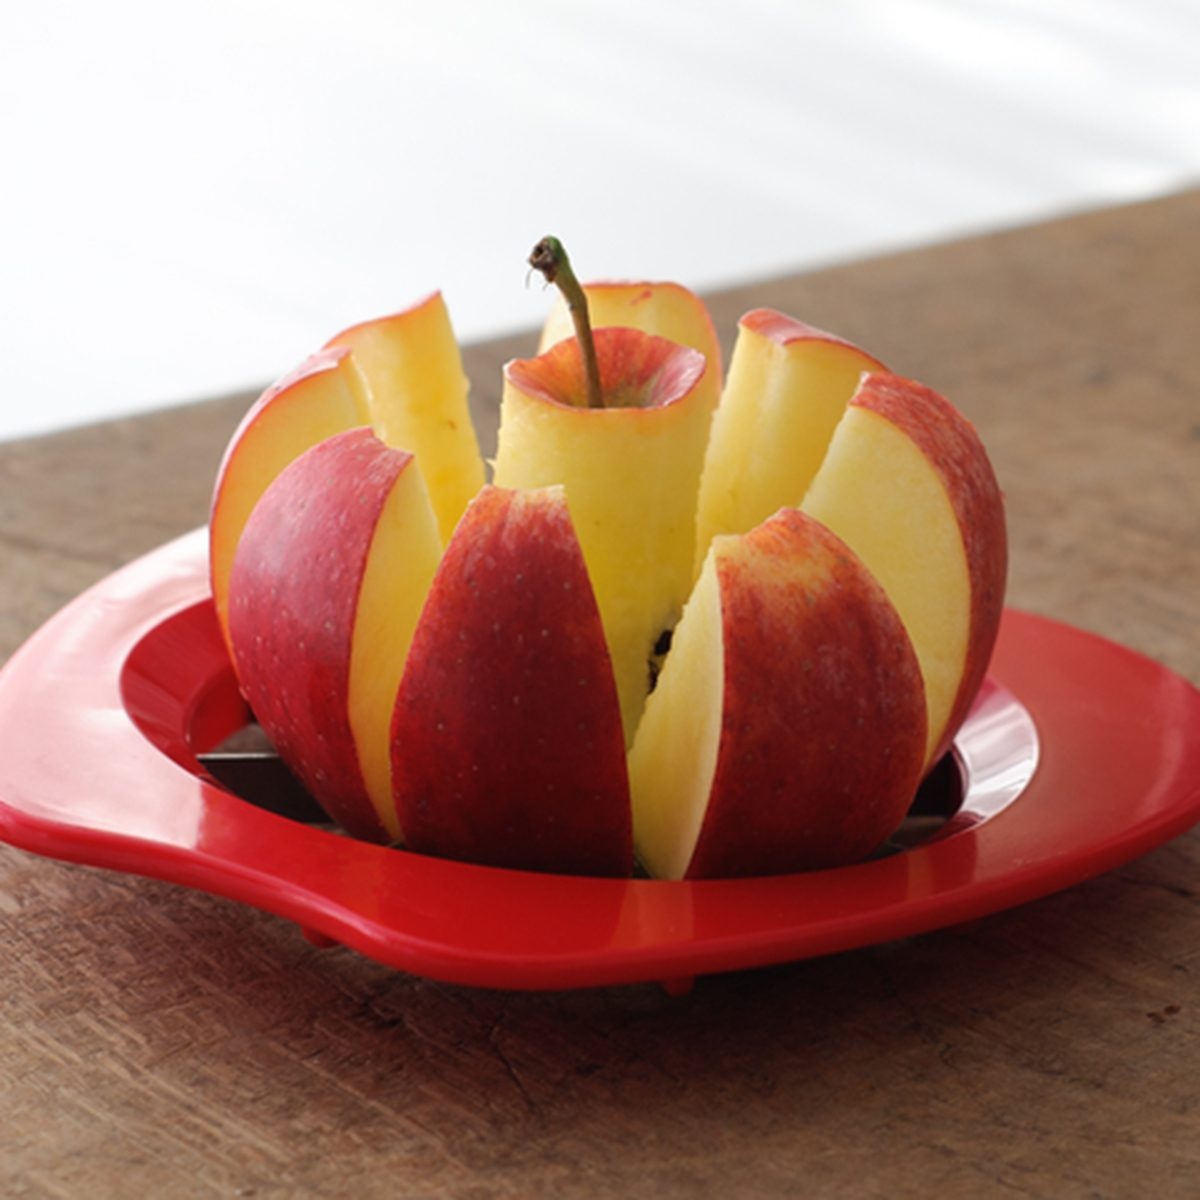 Apple Slicer and Vintage Kitchen Scale; Shutterstock ID 253357159; Job (TFH, TOH, RD, BNB, CWM, CM): TOH